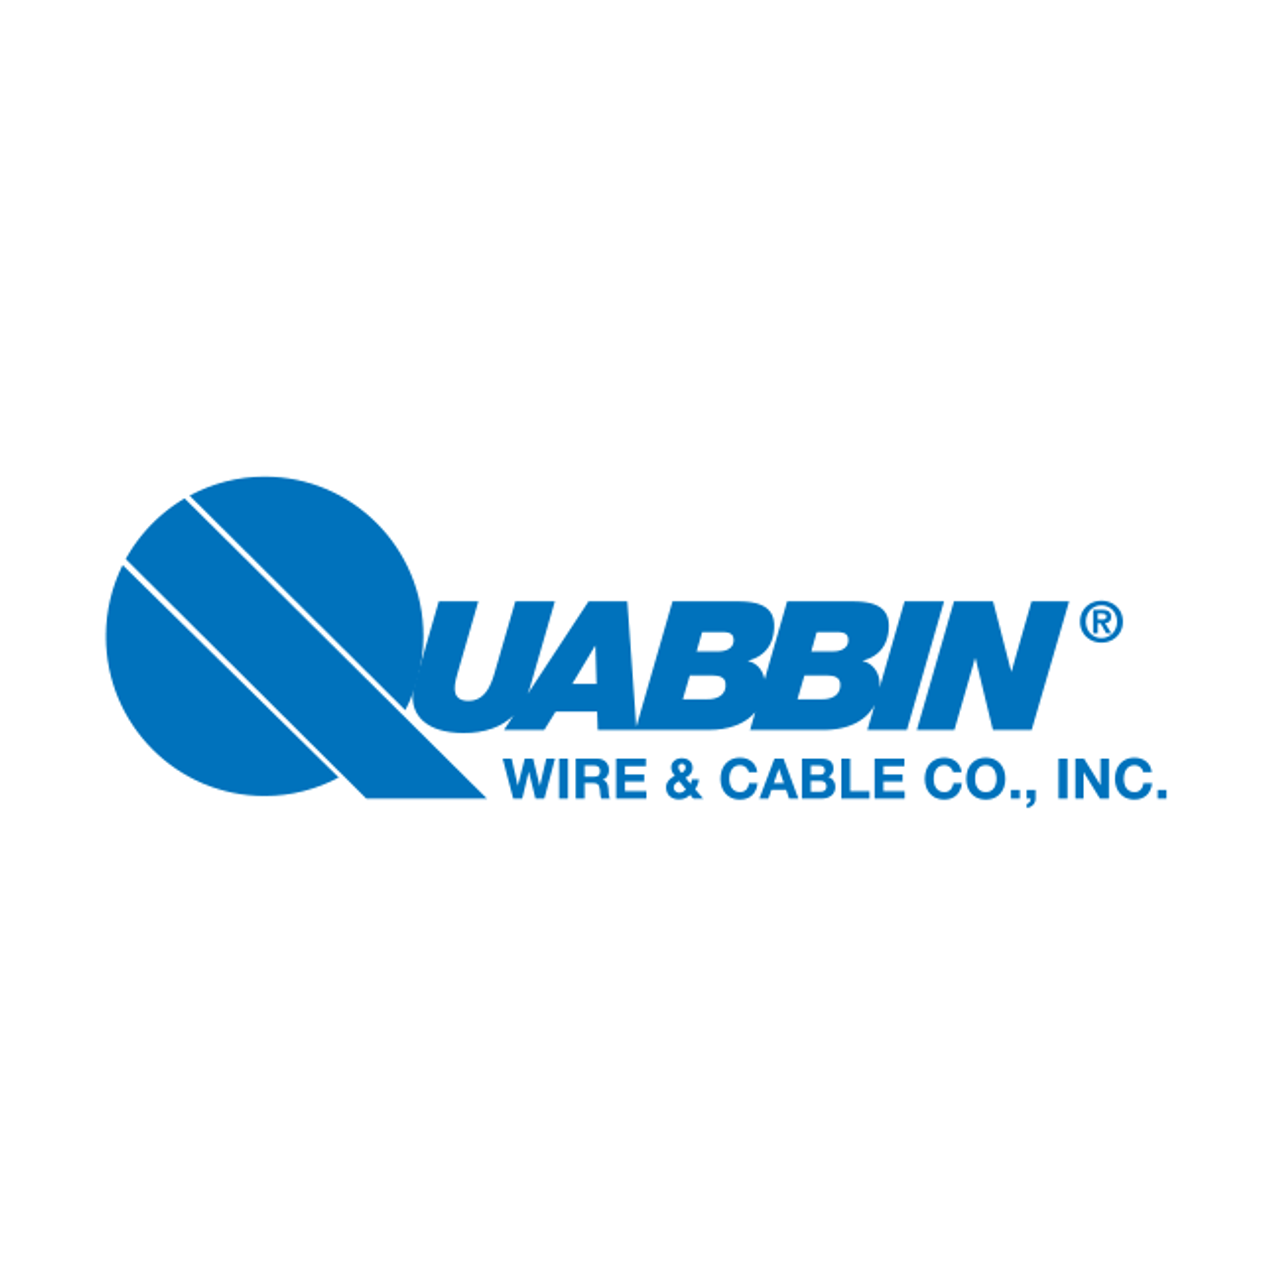 Quabbin 5500 DataMax Patch Cat 5e – 24 AWG, 4 pair, unshielded, PVC